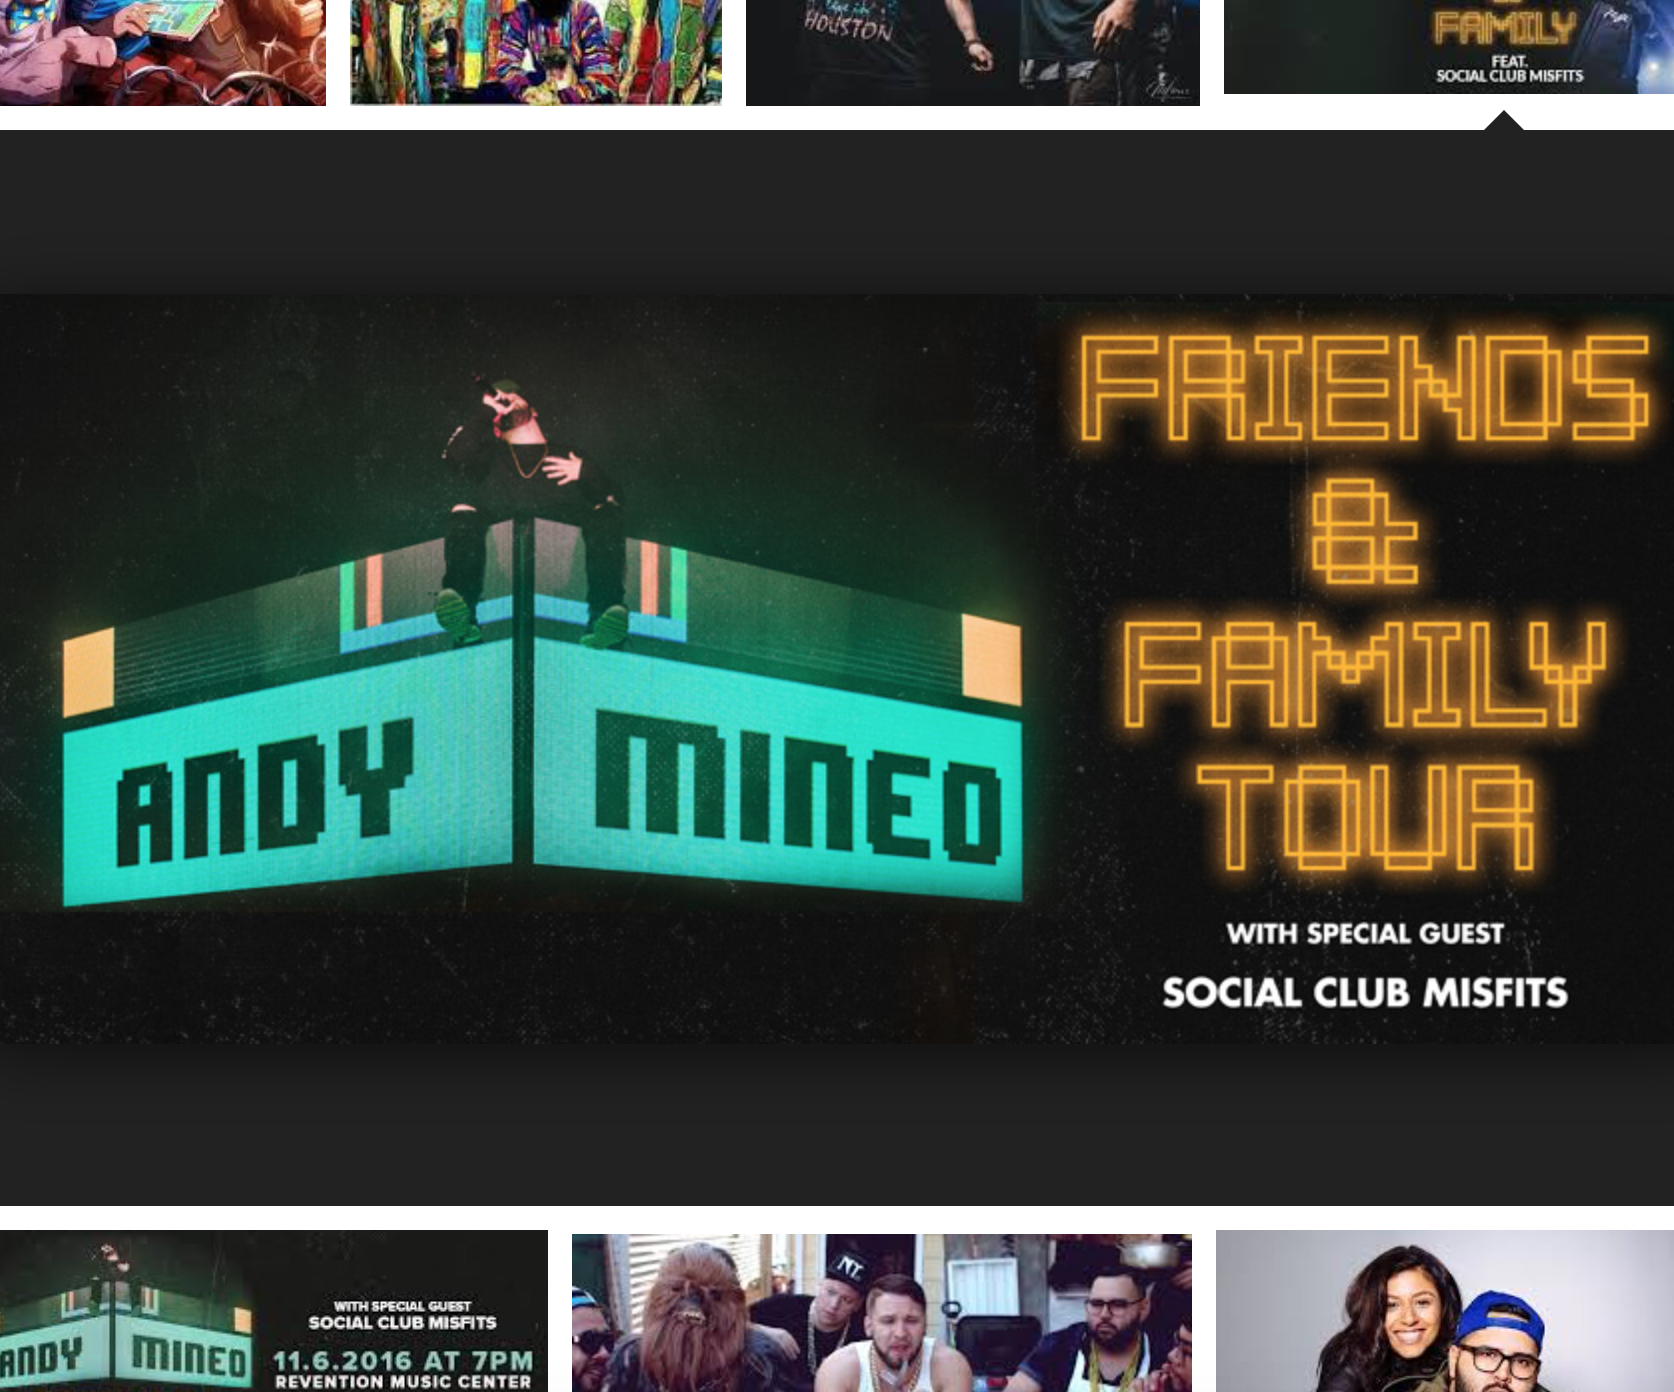 Andy Mineo - Friends & Family Tour - World Vision Volunteer - Memphis, TN